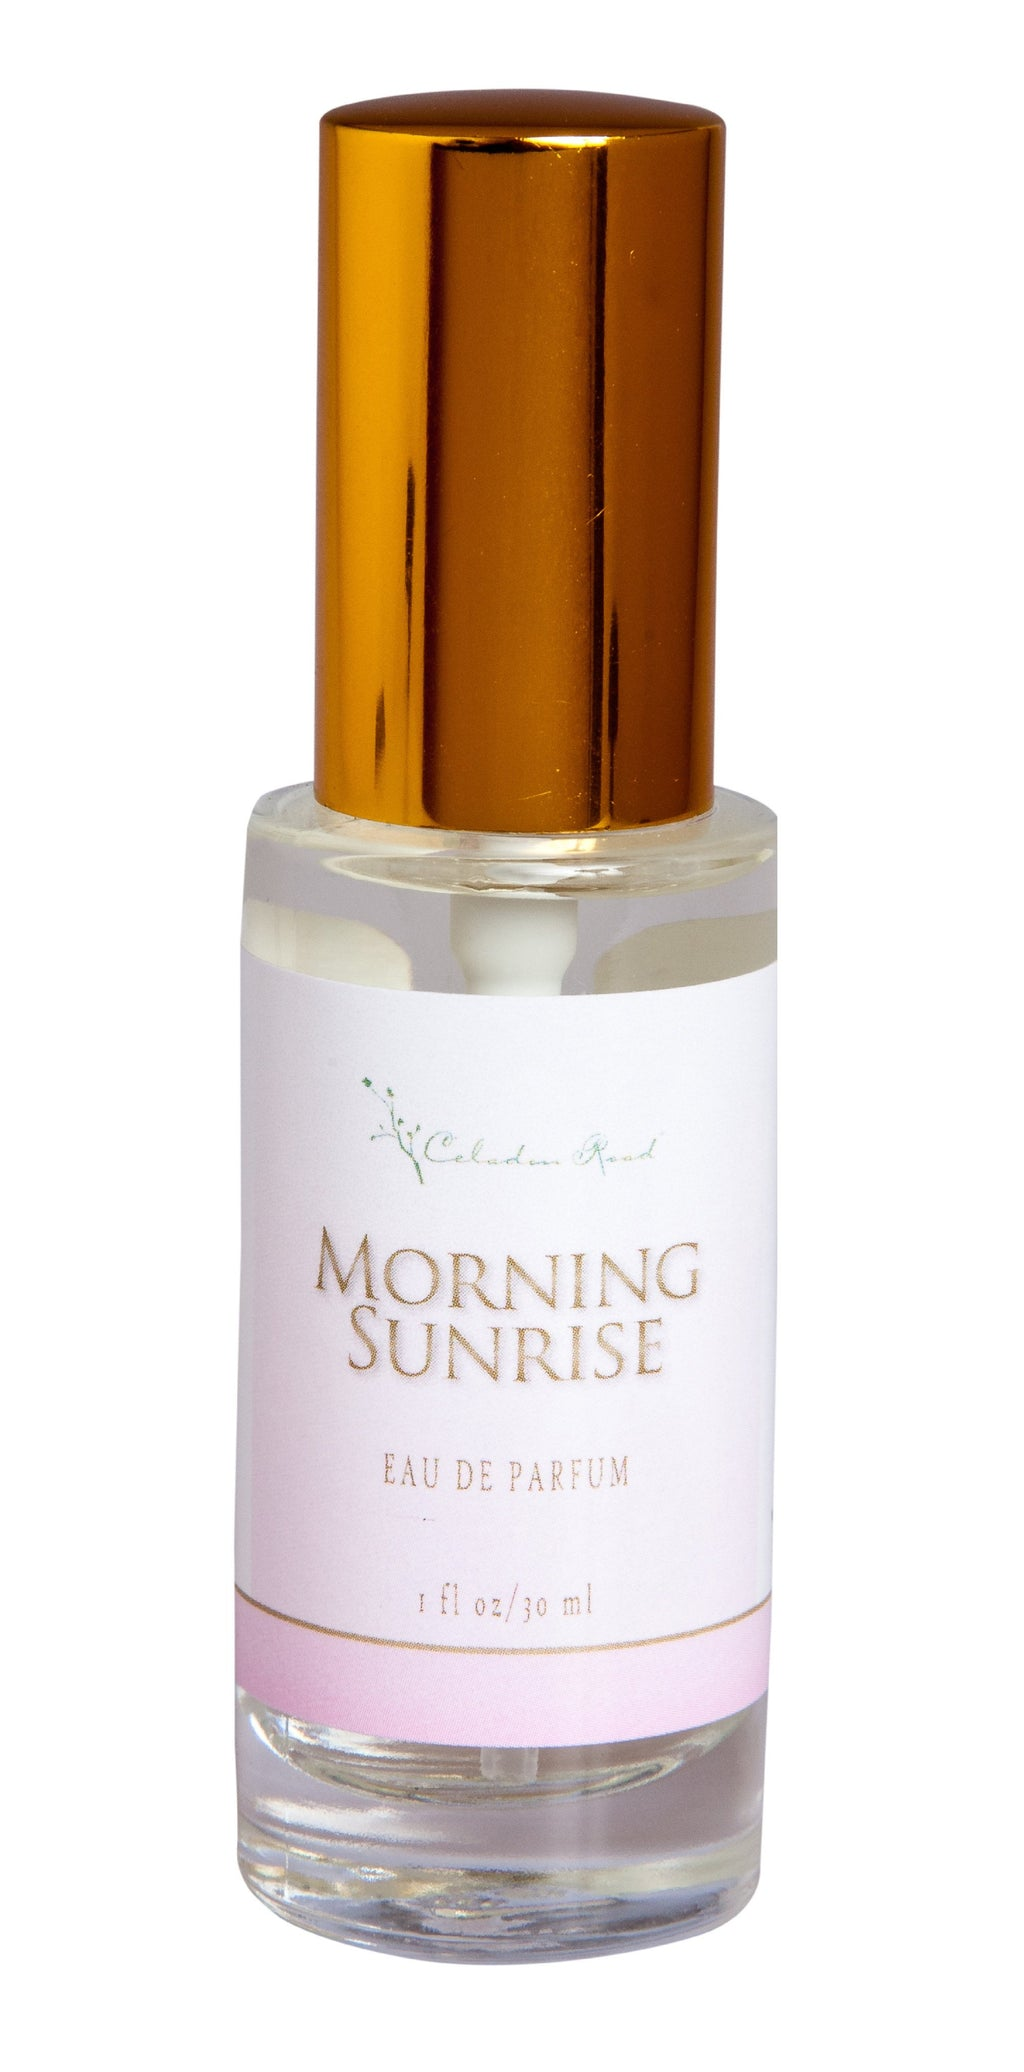 Morning Sunrise Perfume- Celadon Road- www.celadonroad.com